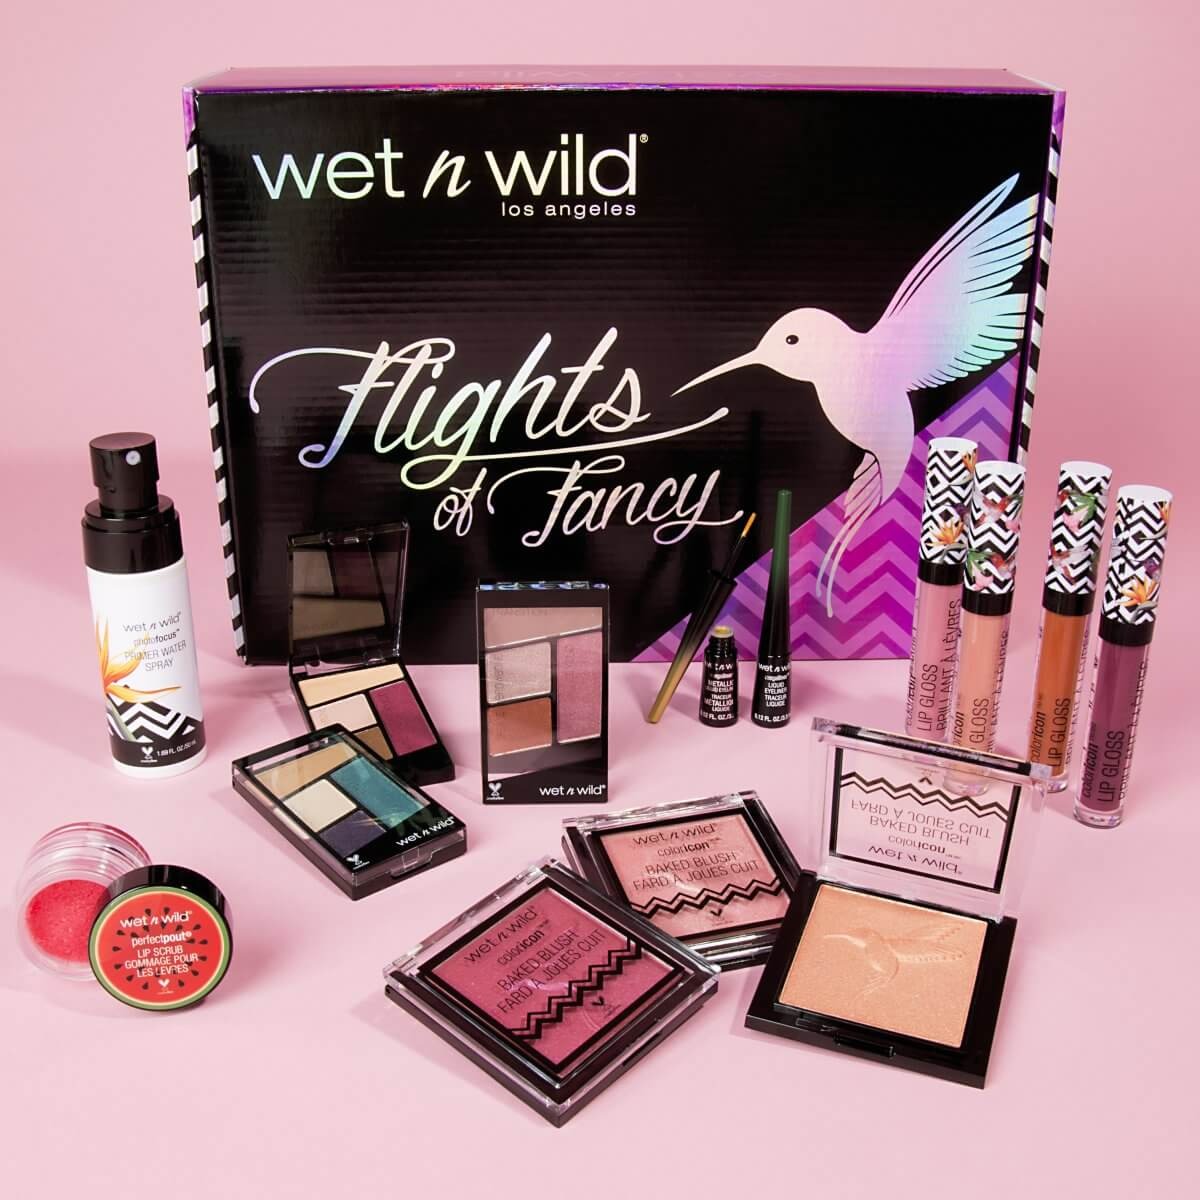 wet n wild Flights of Fancy Launch